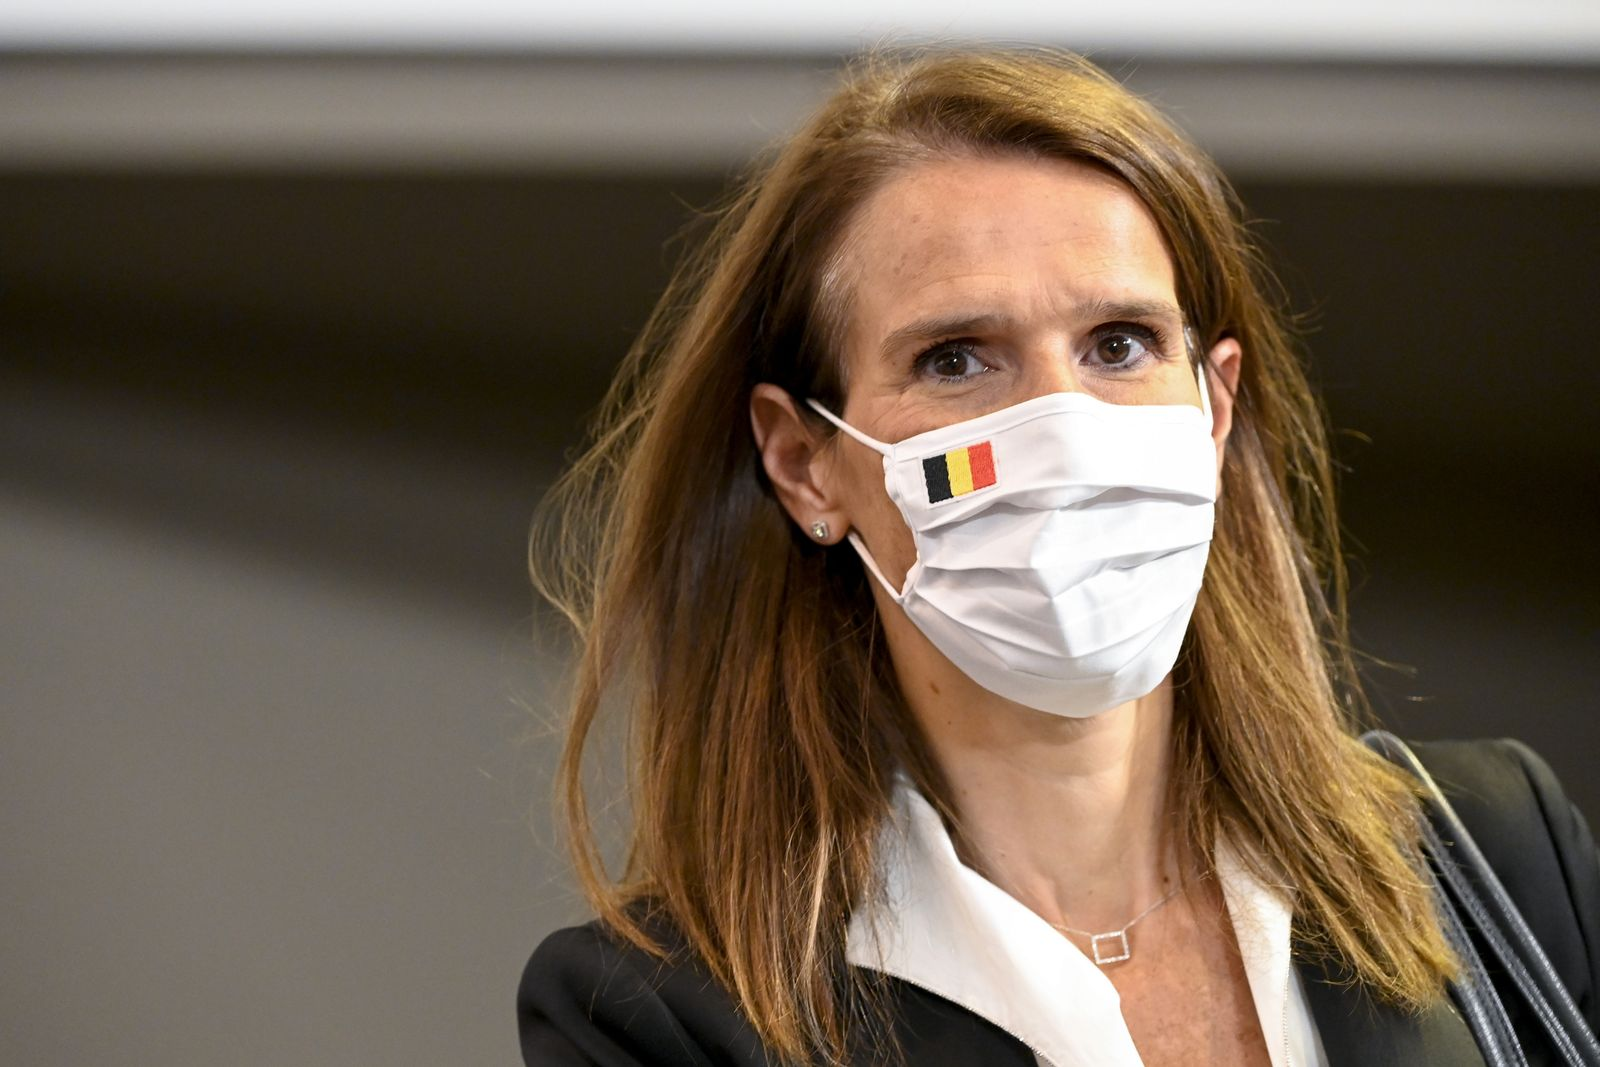 Belgium's National Security Council on coronavirus pandemic, Brussels - 23 Jul 2020